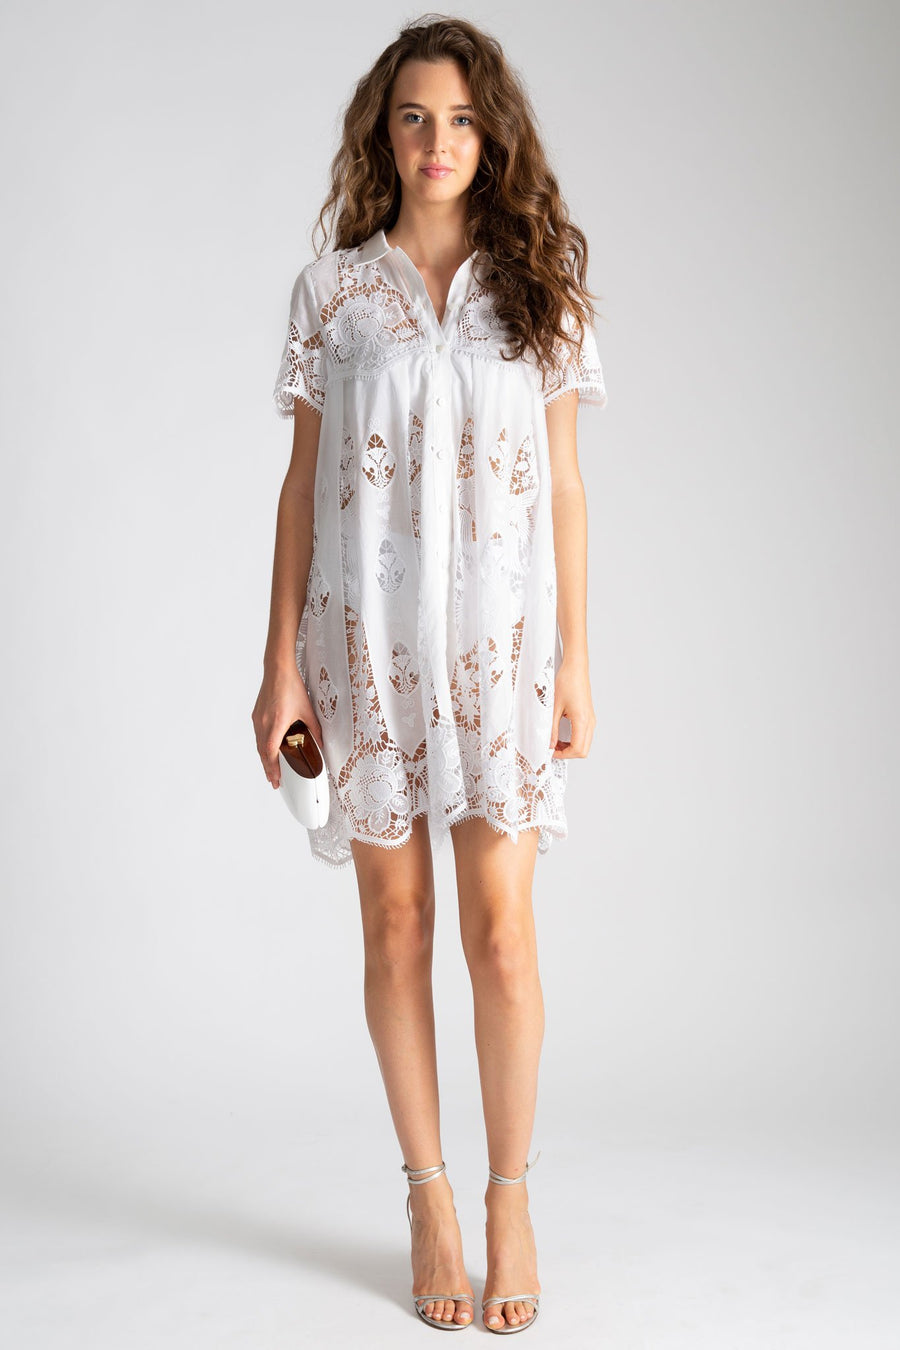 This is a photo of a woman wearing a white cotton babydoll coverup dress with lace embroidery in hibiscus inspired flowers. The dress buttons up the front and is not lined. Here, she styles it with heels and clutch.